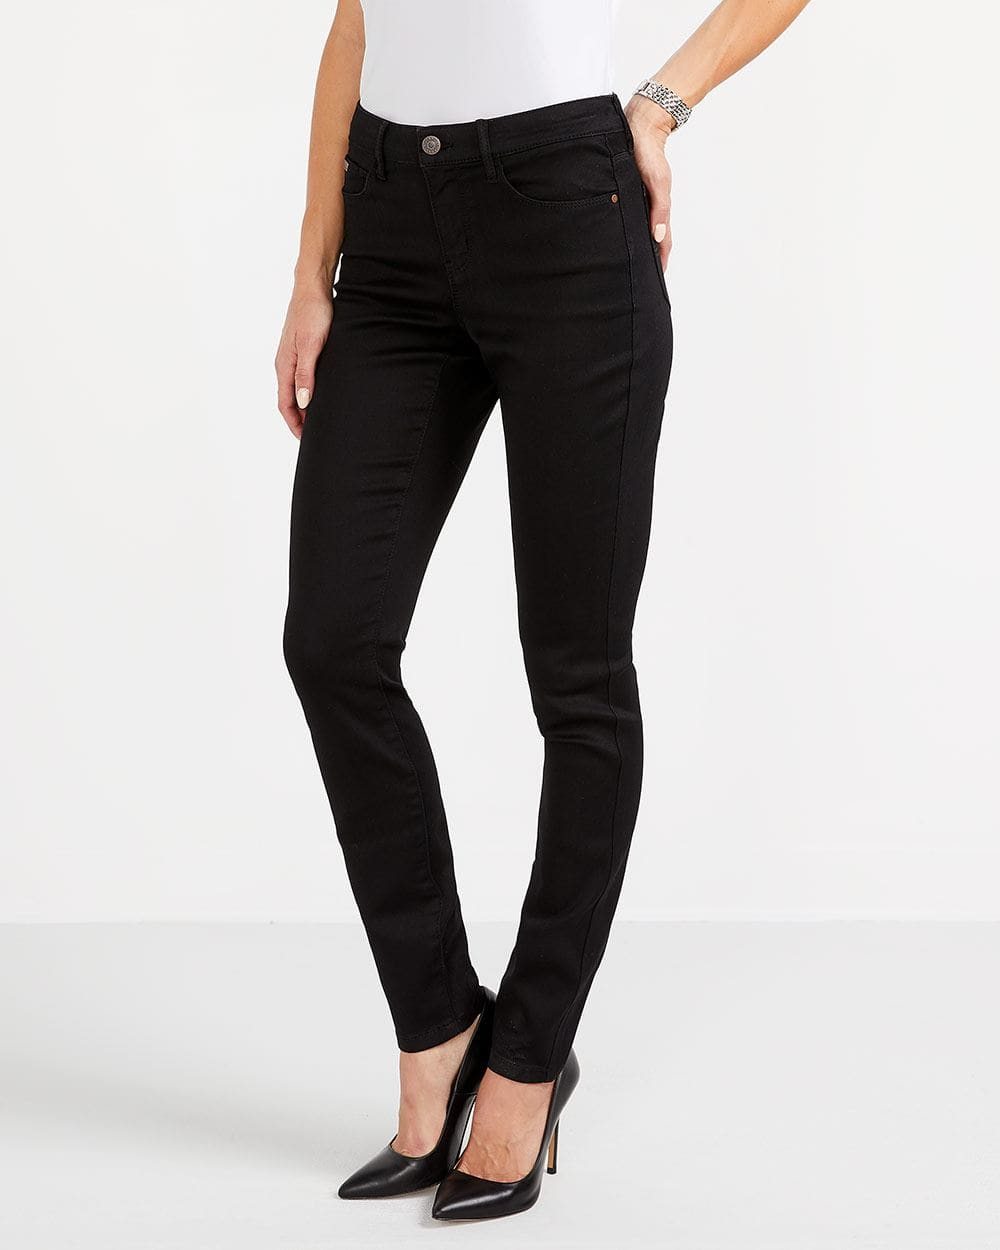 The Signature Soft Skinny Black Jeans